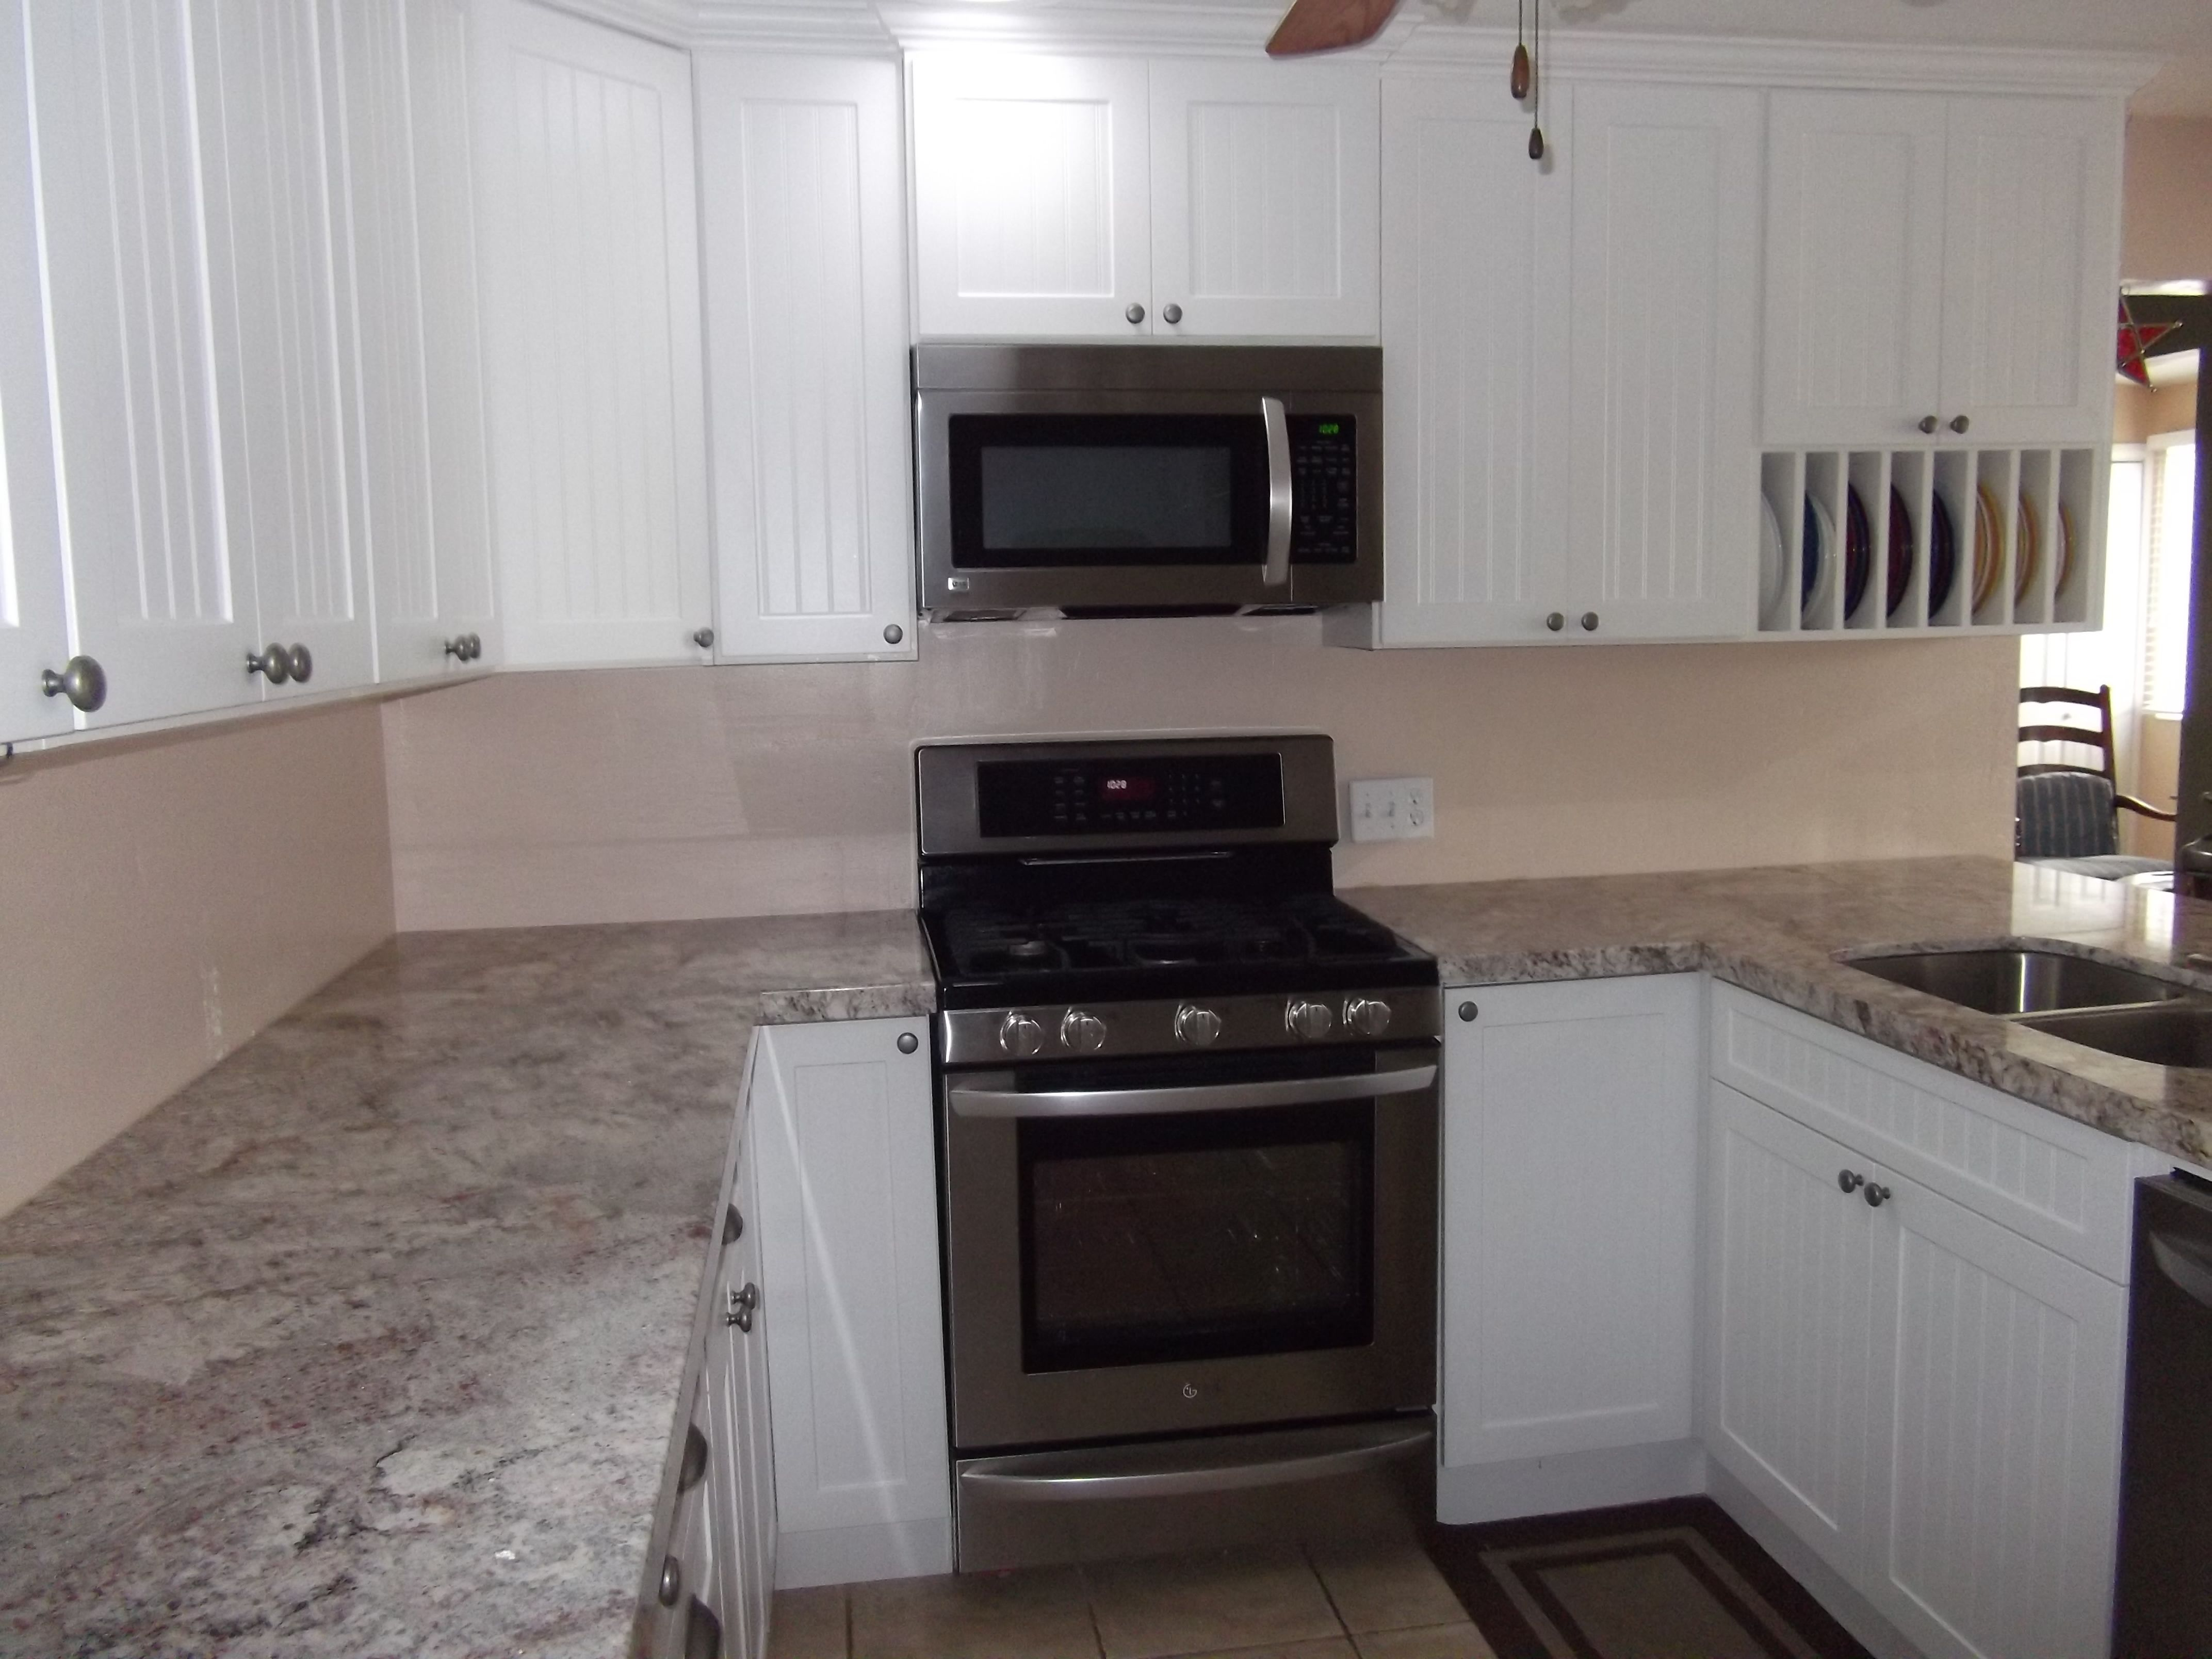 Mesmerizing Gray Marble Countertop With U Shaped Kitchen Ideas White  Cabinets As Decorate Apartment Kitchen Designs